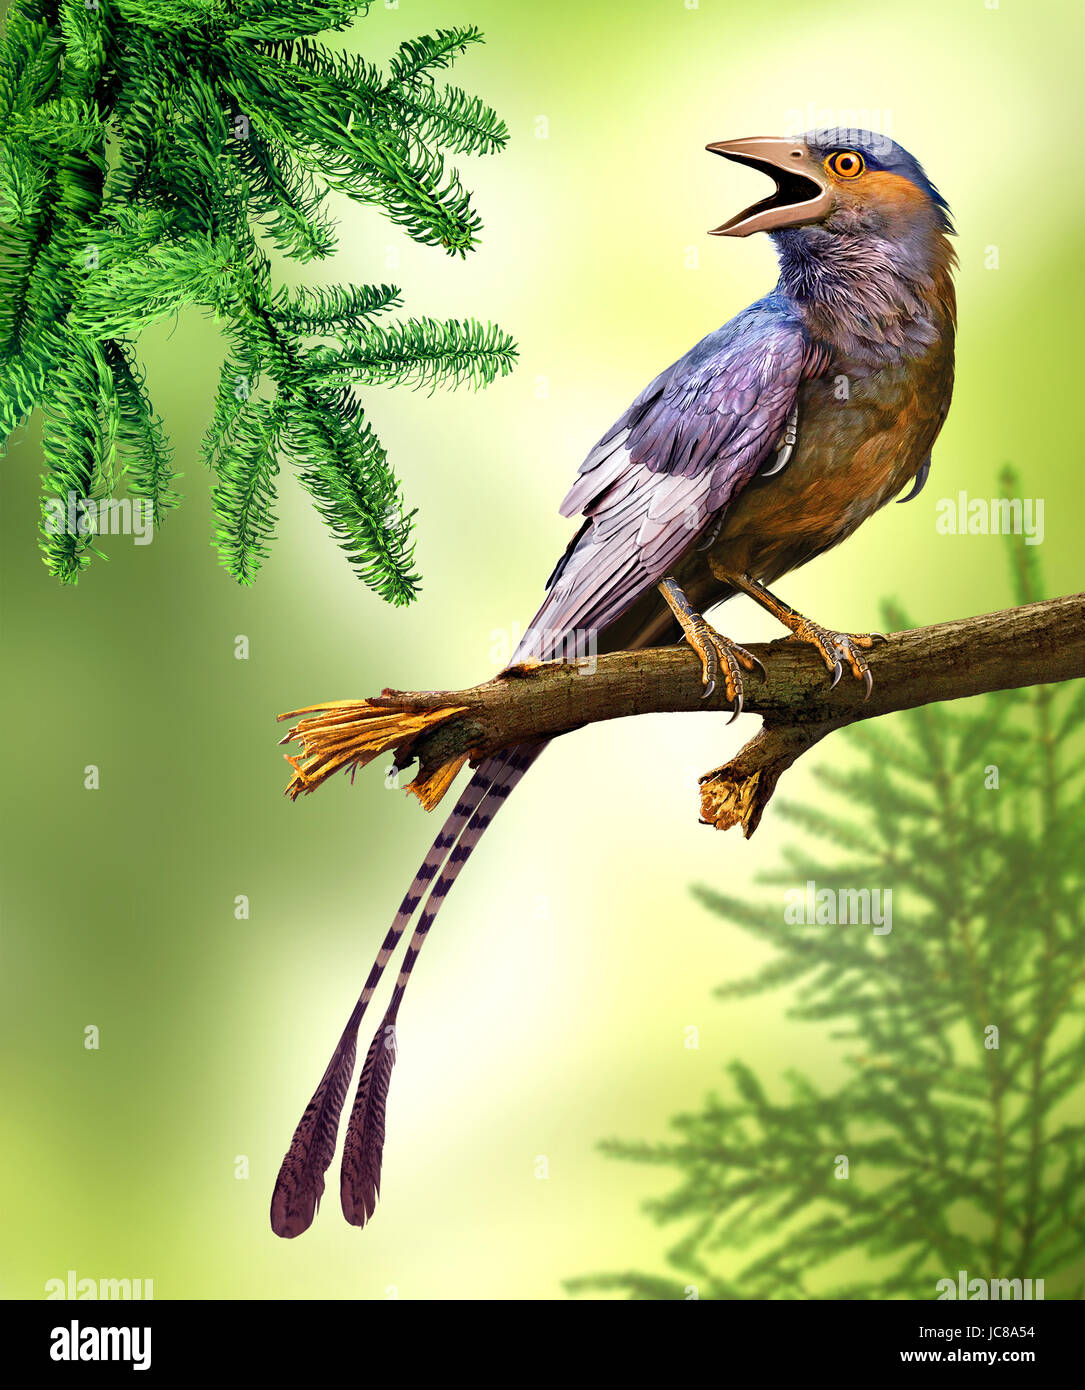 Confuciusornis is a genus of primitive crow-sized birds from the Early Cretaceous - Stock Image